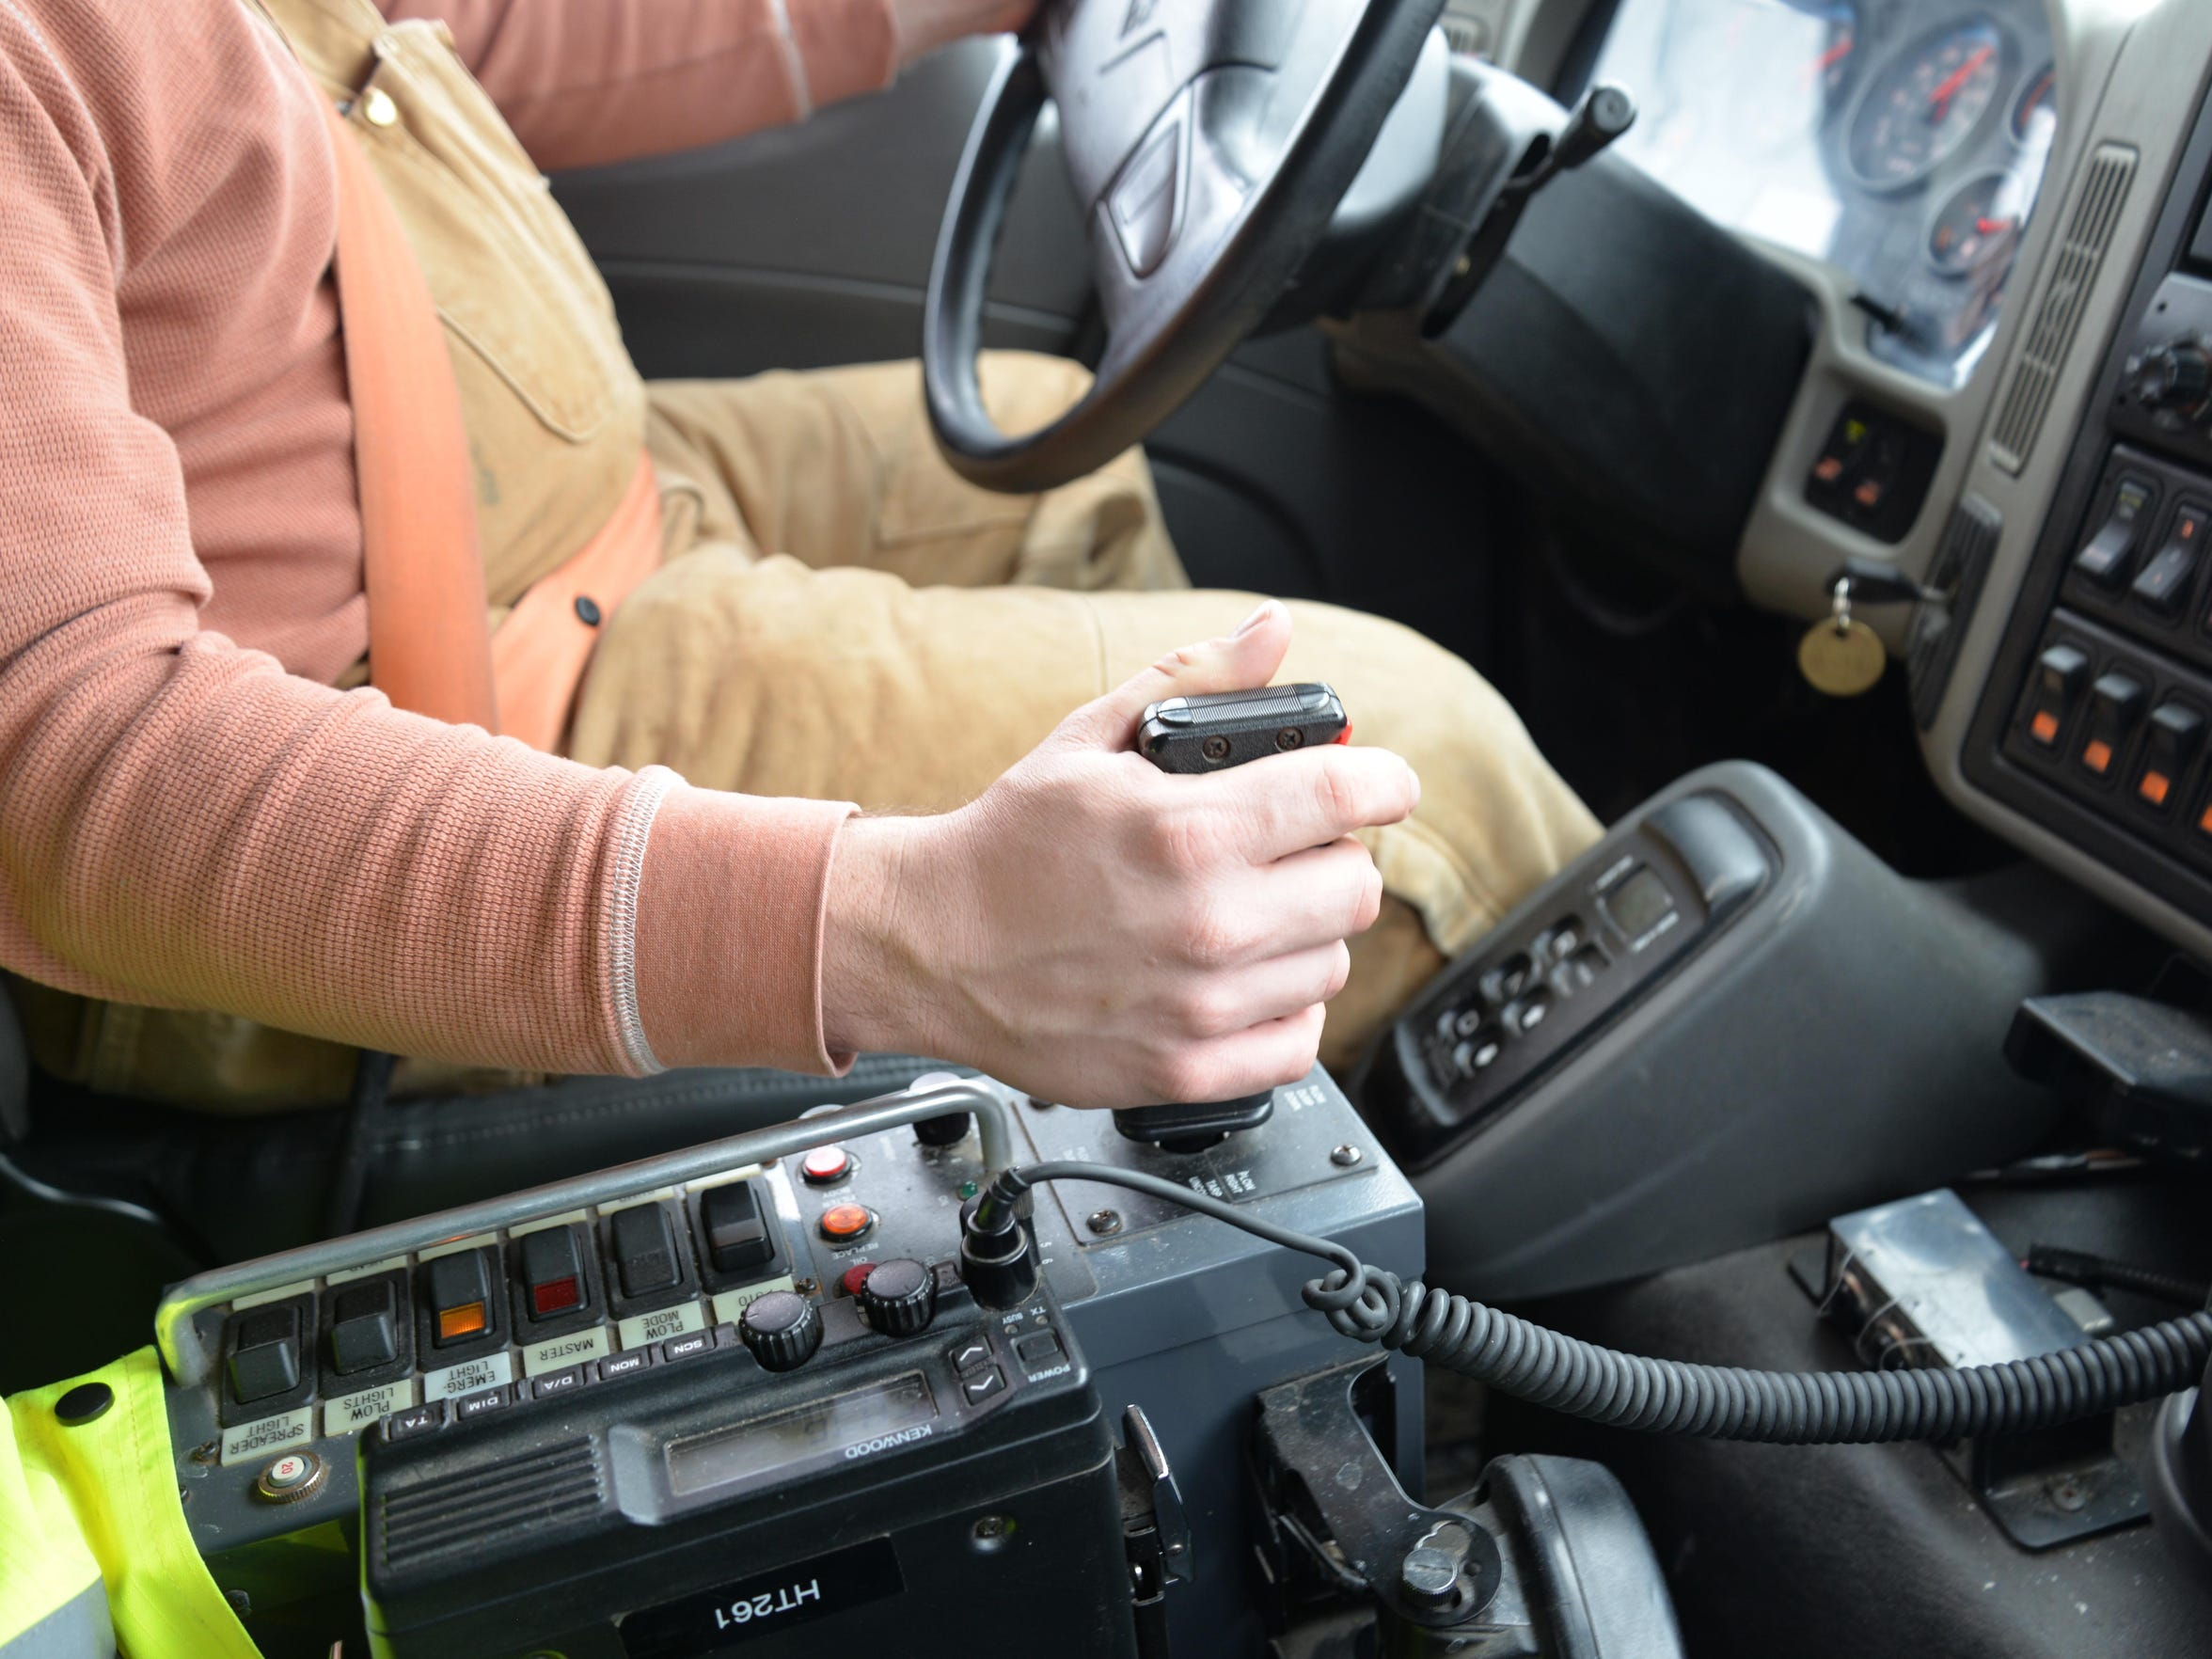 The joystick inside of Will Hamblet's snowplow. It moves the plow attached to the front of the truck and can also control the salt, which is in the back of his truck.